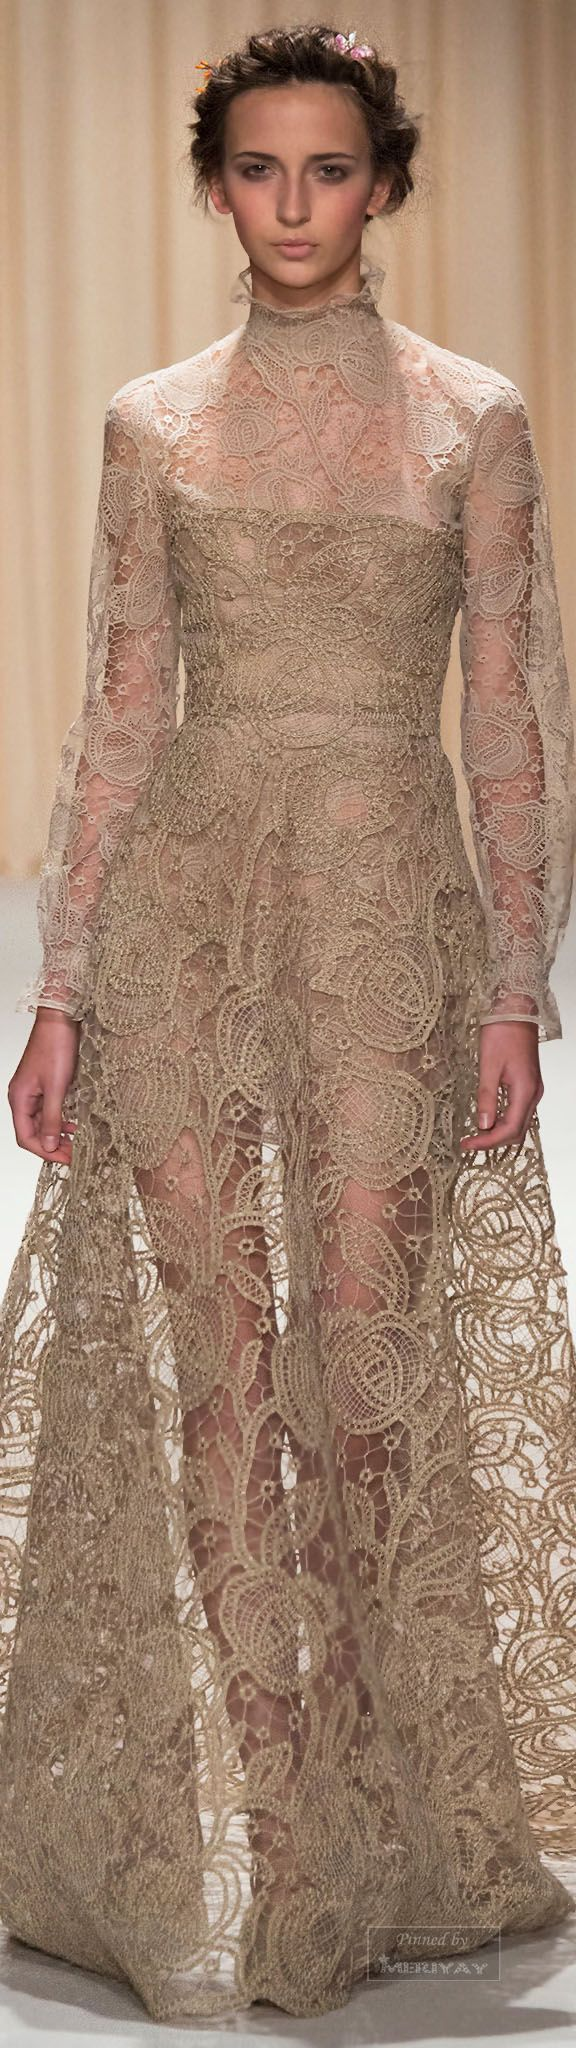 ⌘ l o v e l i e s t l a c e {dear lace, you are so very lovely} Valentino.Spring 2015 Couture.